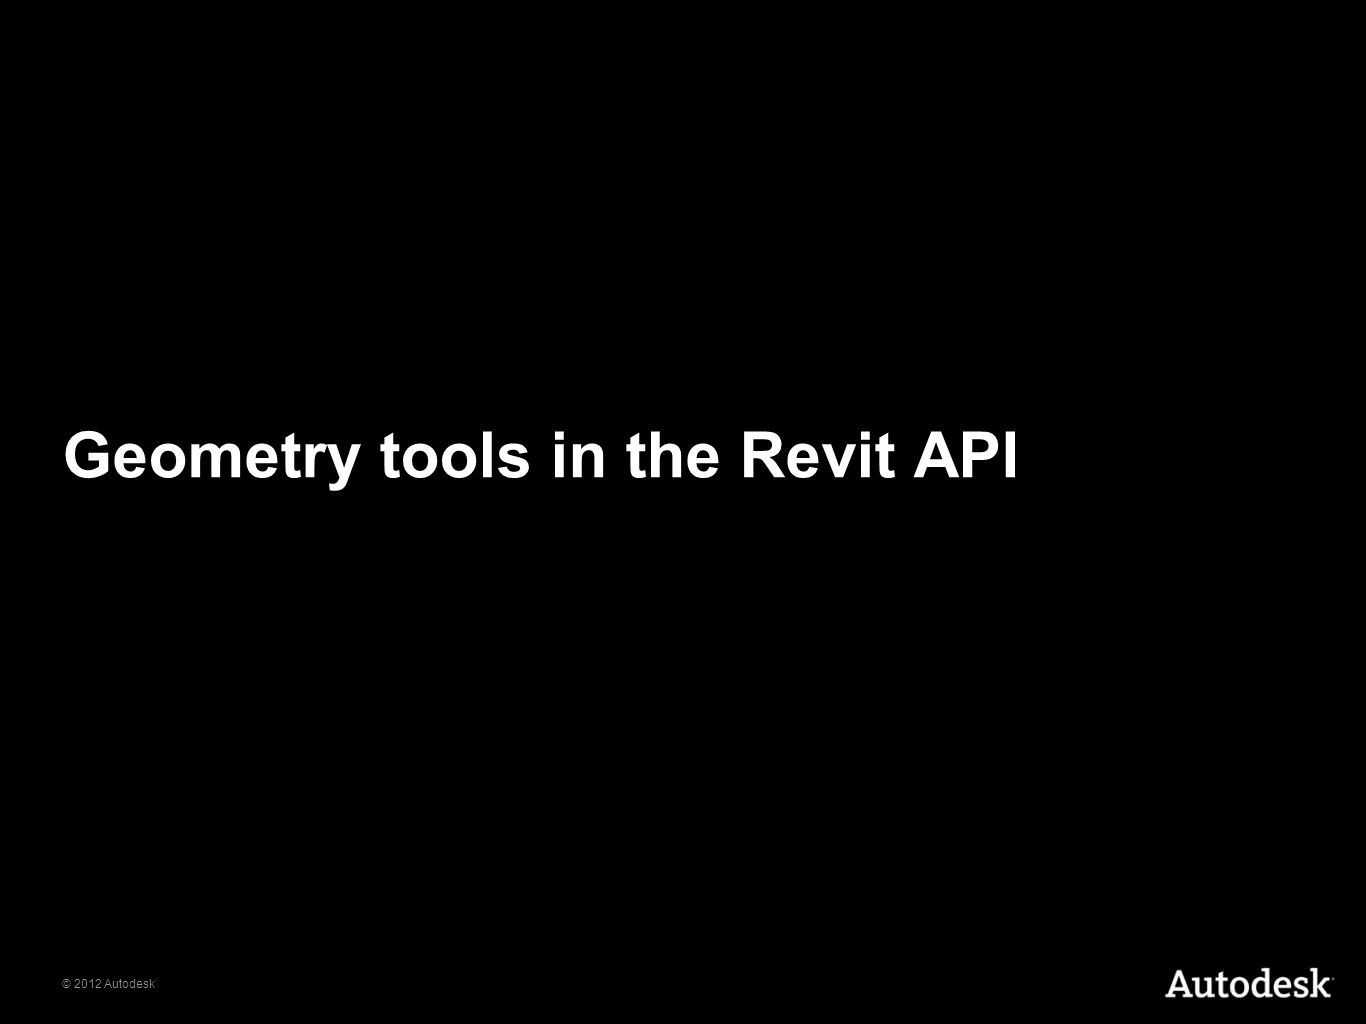 Geometry tools in the Revit API